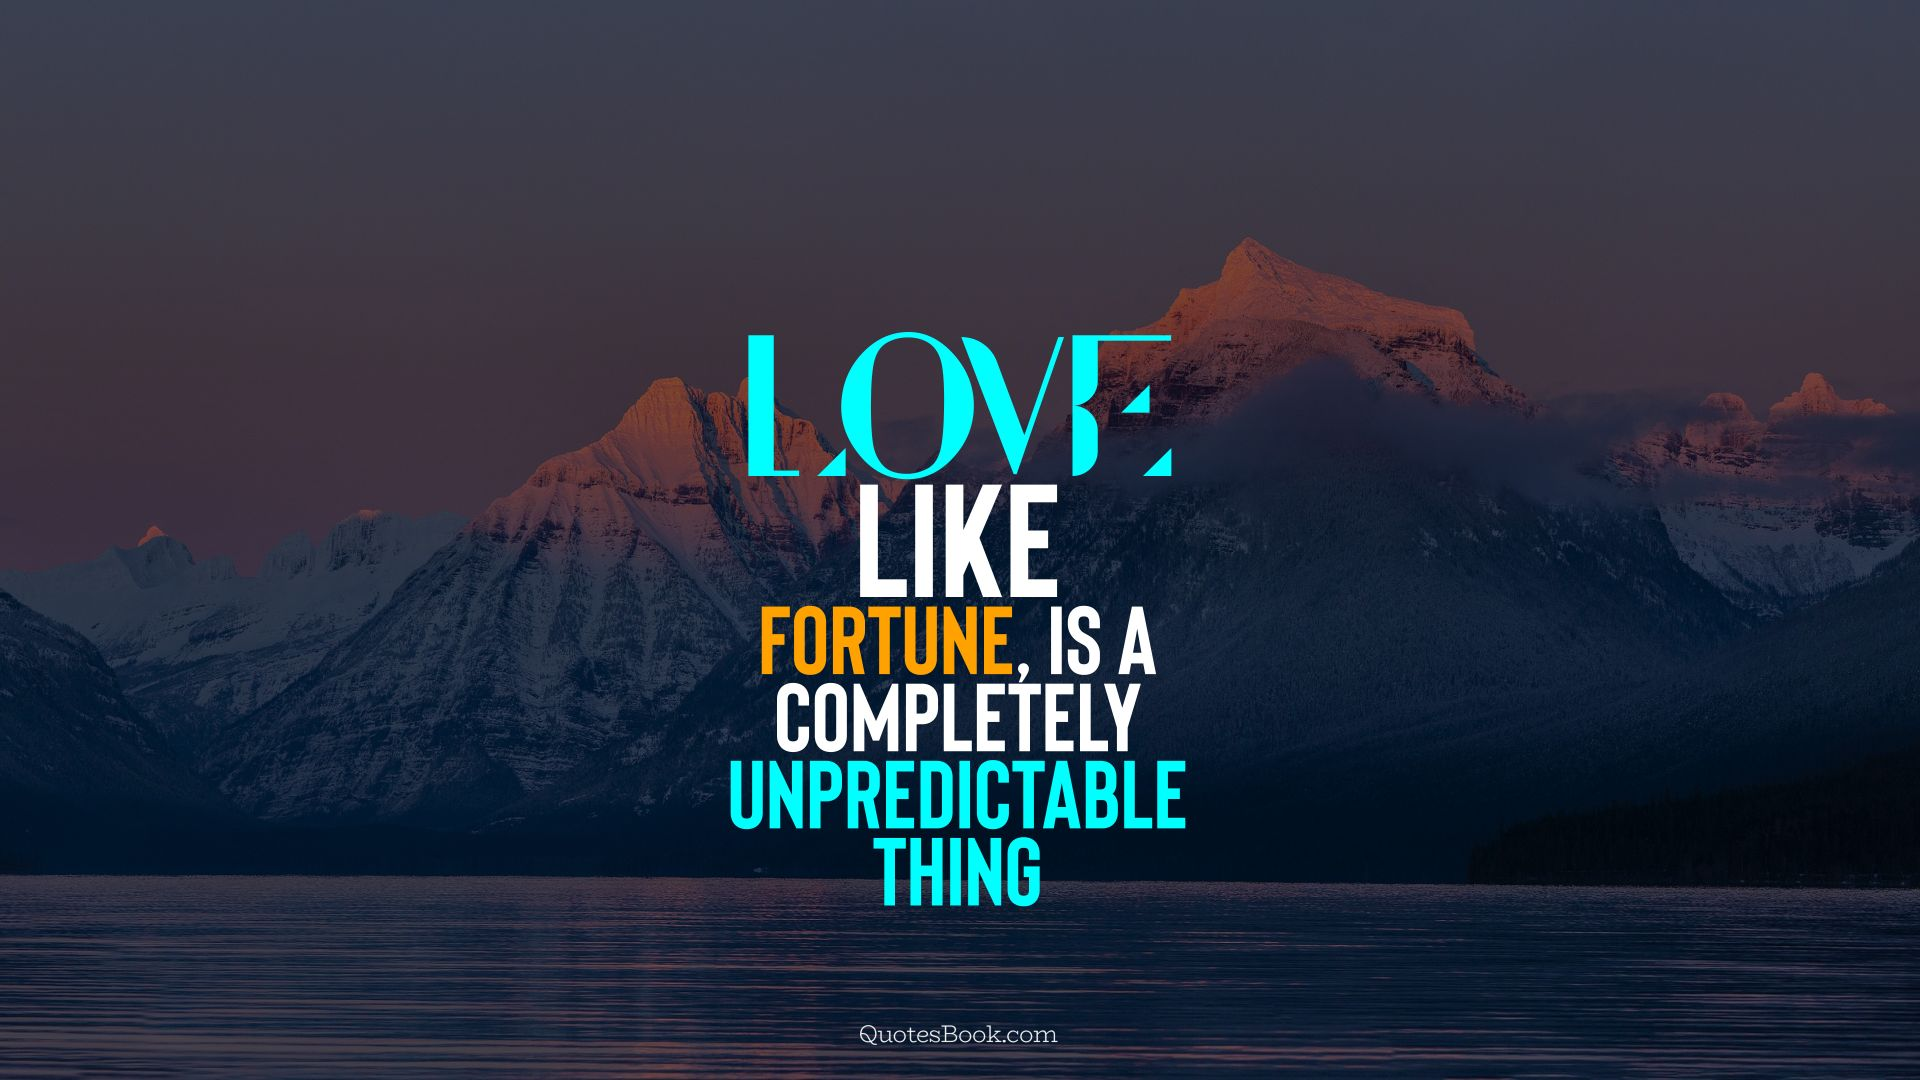 Love, like fortune, is a completely unpredictable thing. - Quote by QuotesBook